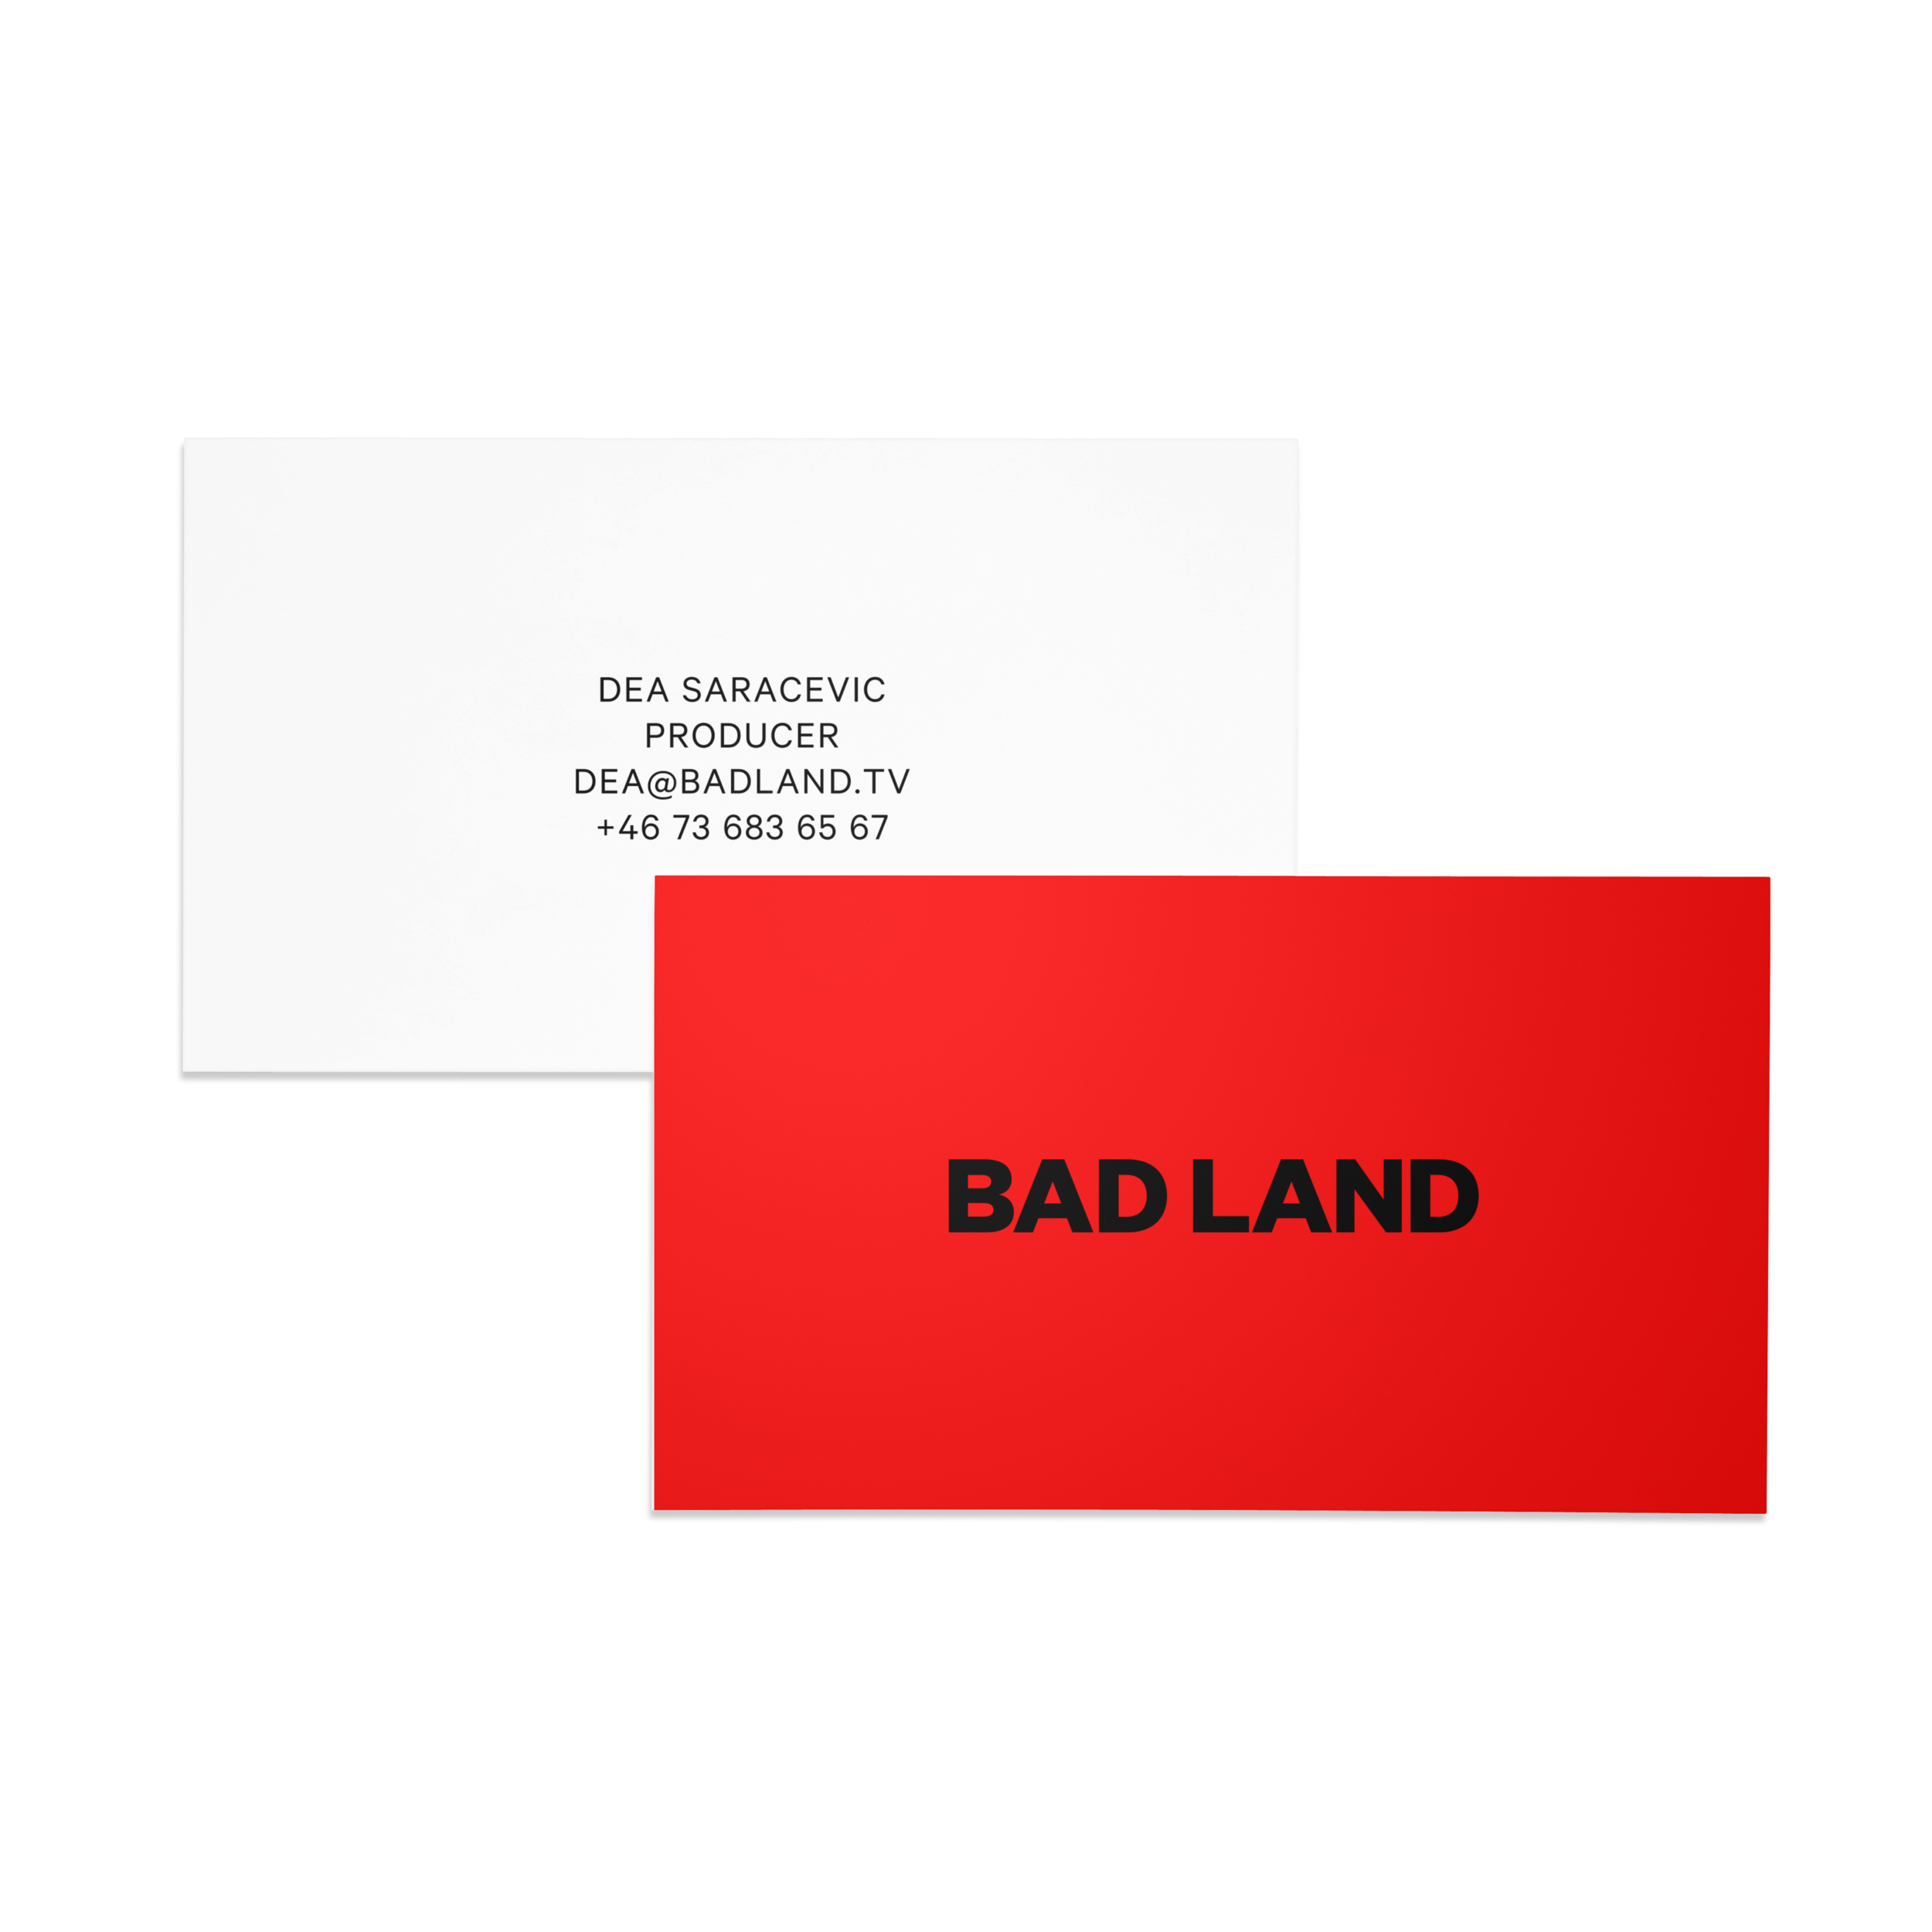 Business Card 0374 2016-12-12.png